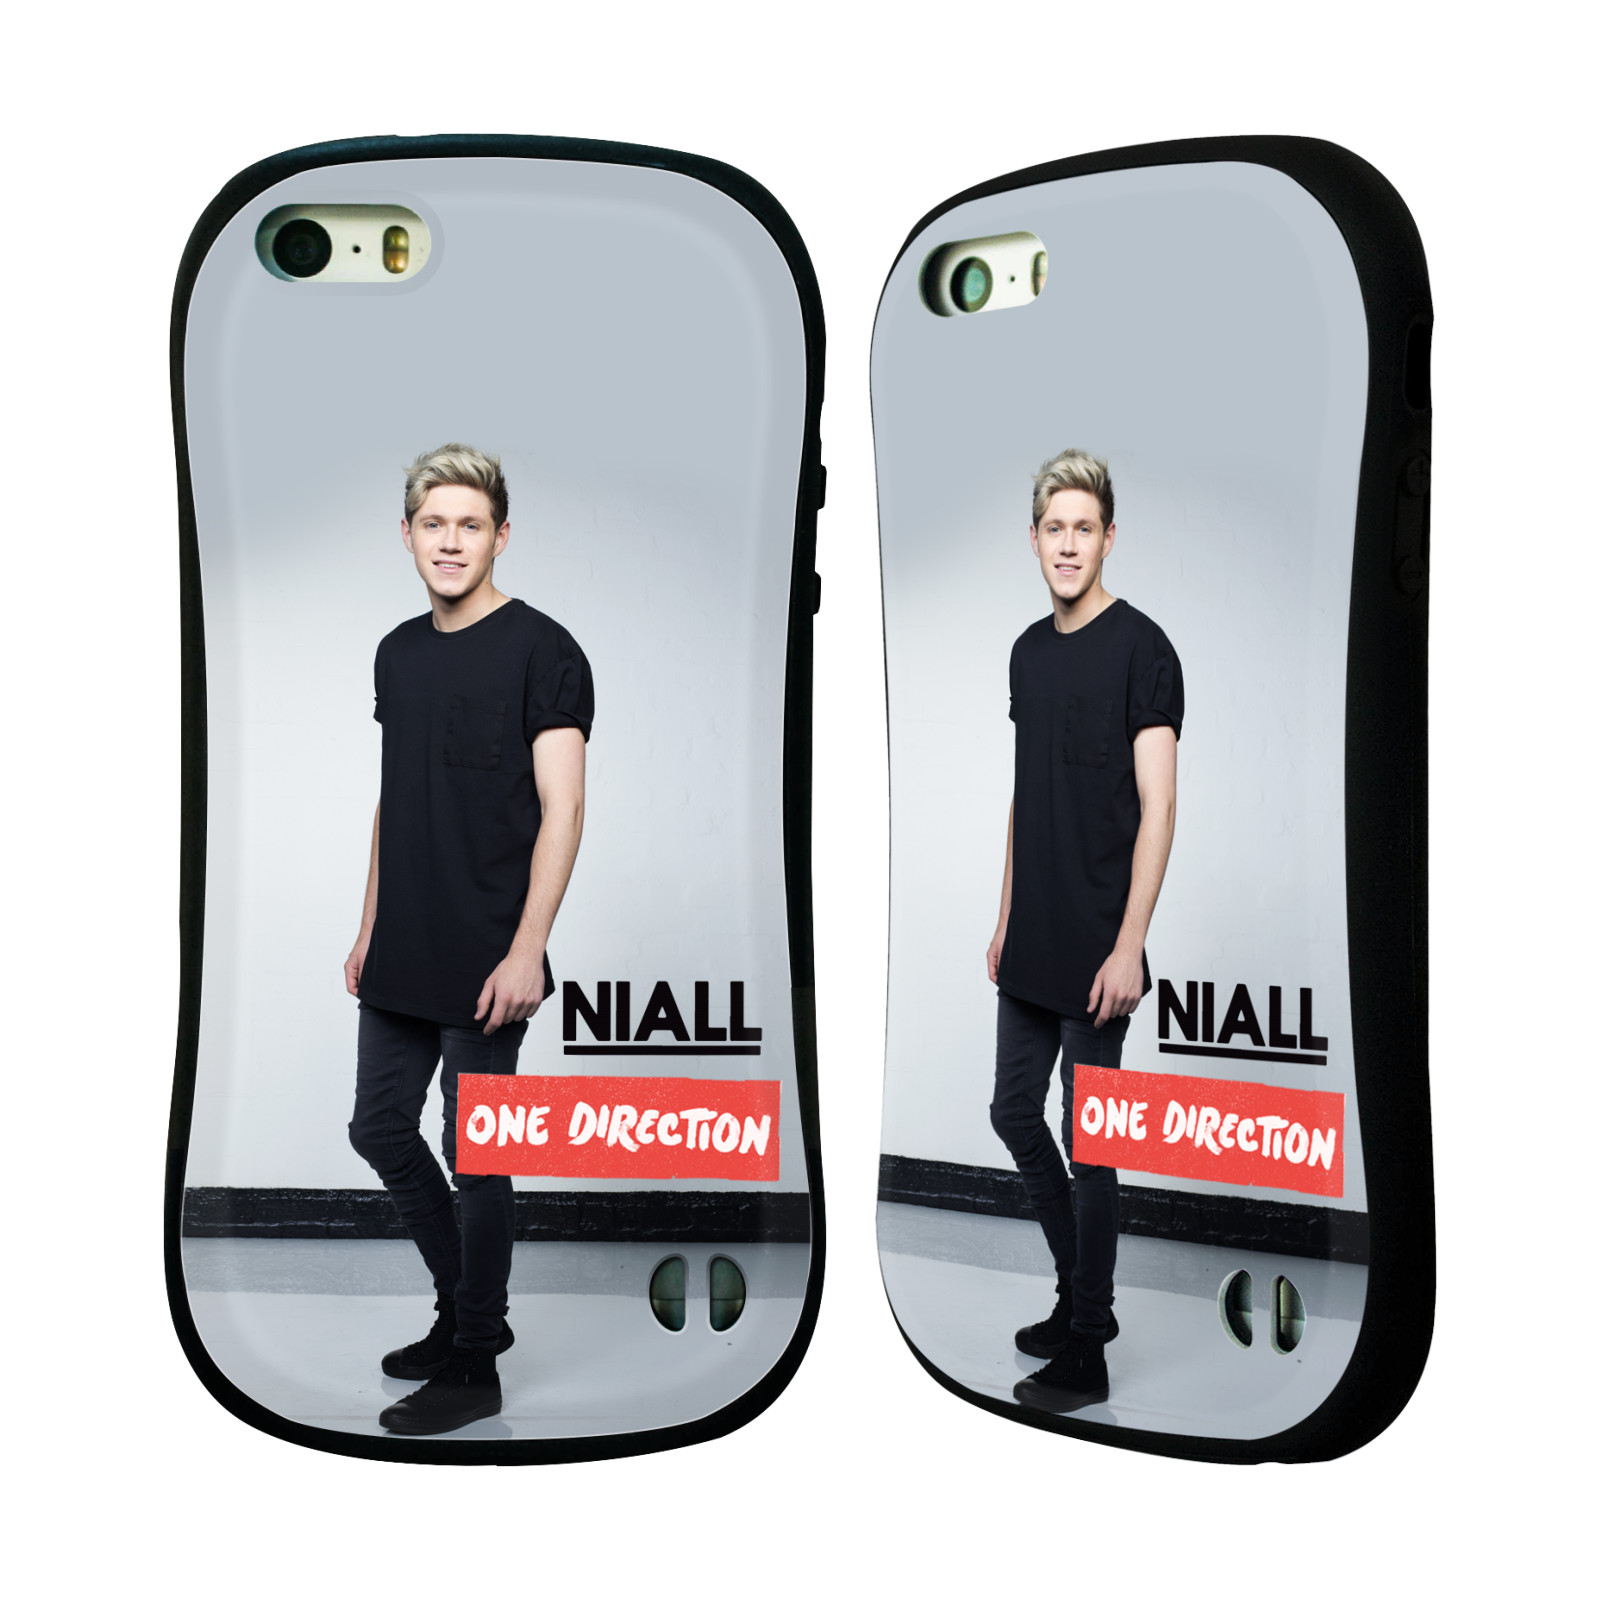 official one direction niall horan photo hybrid case for